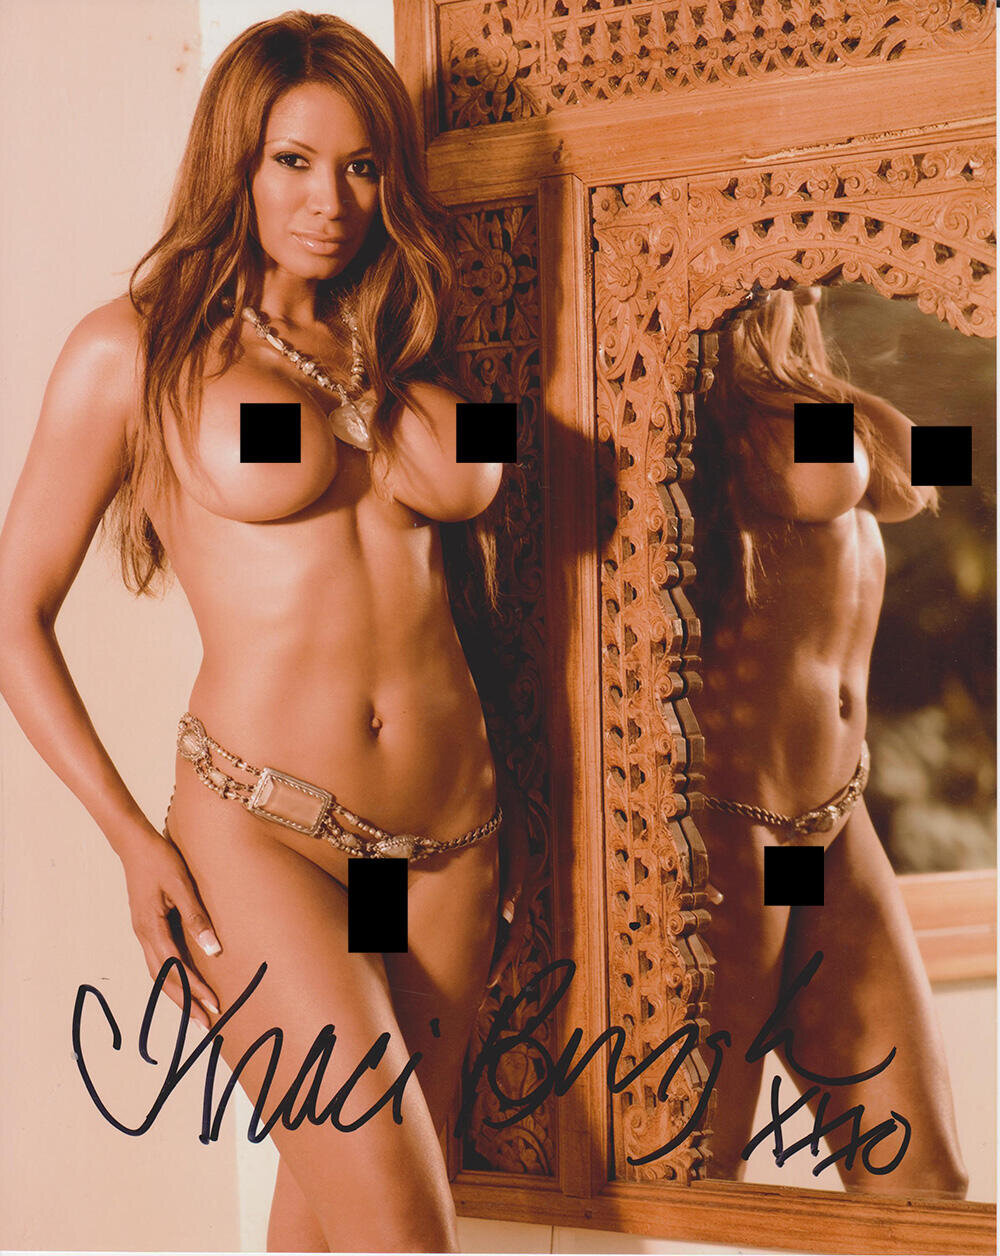 Traci bingham nude pictures